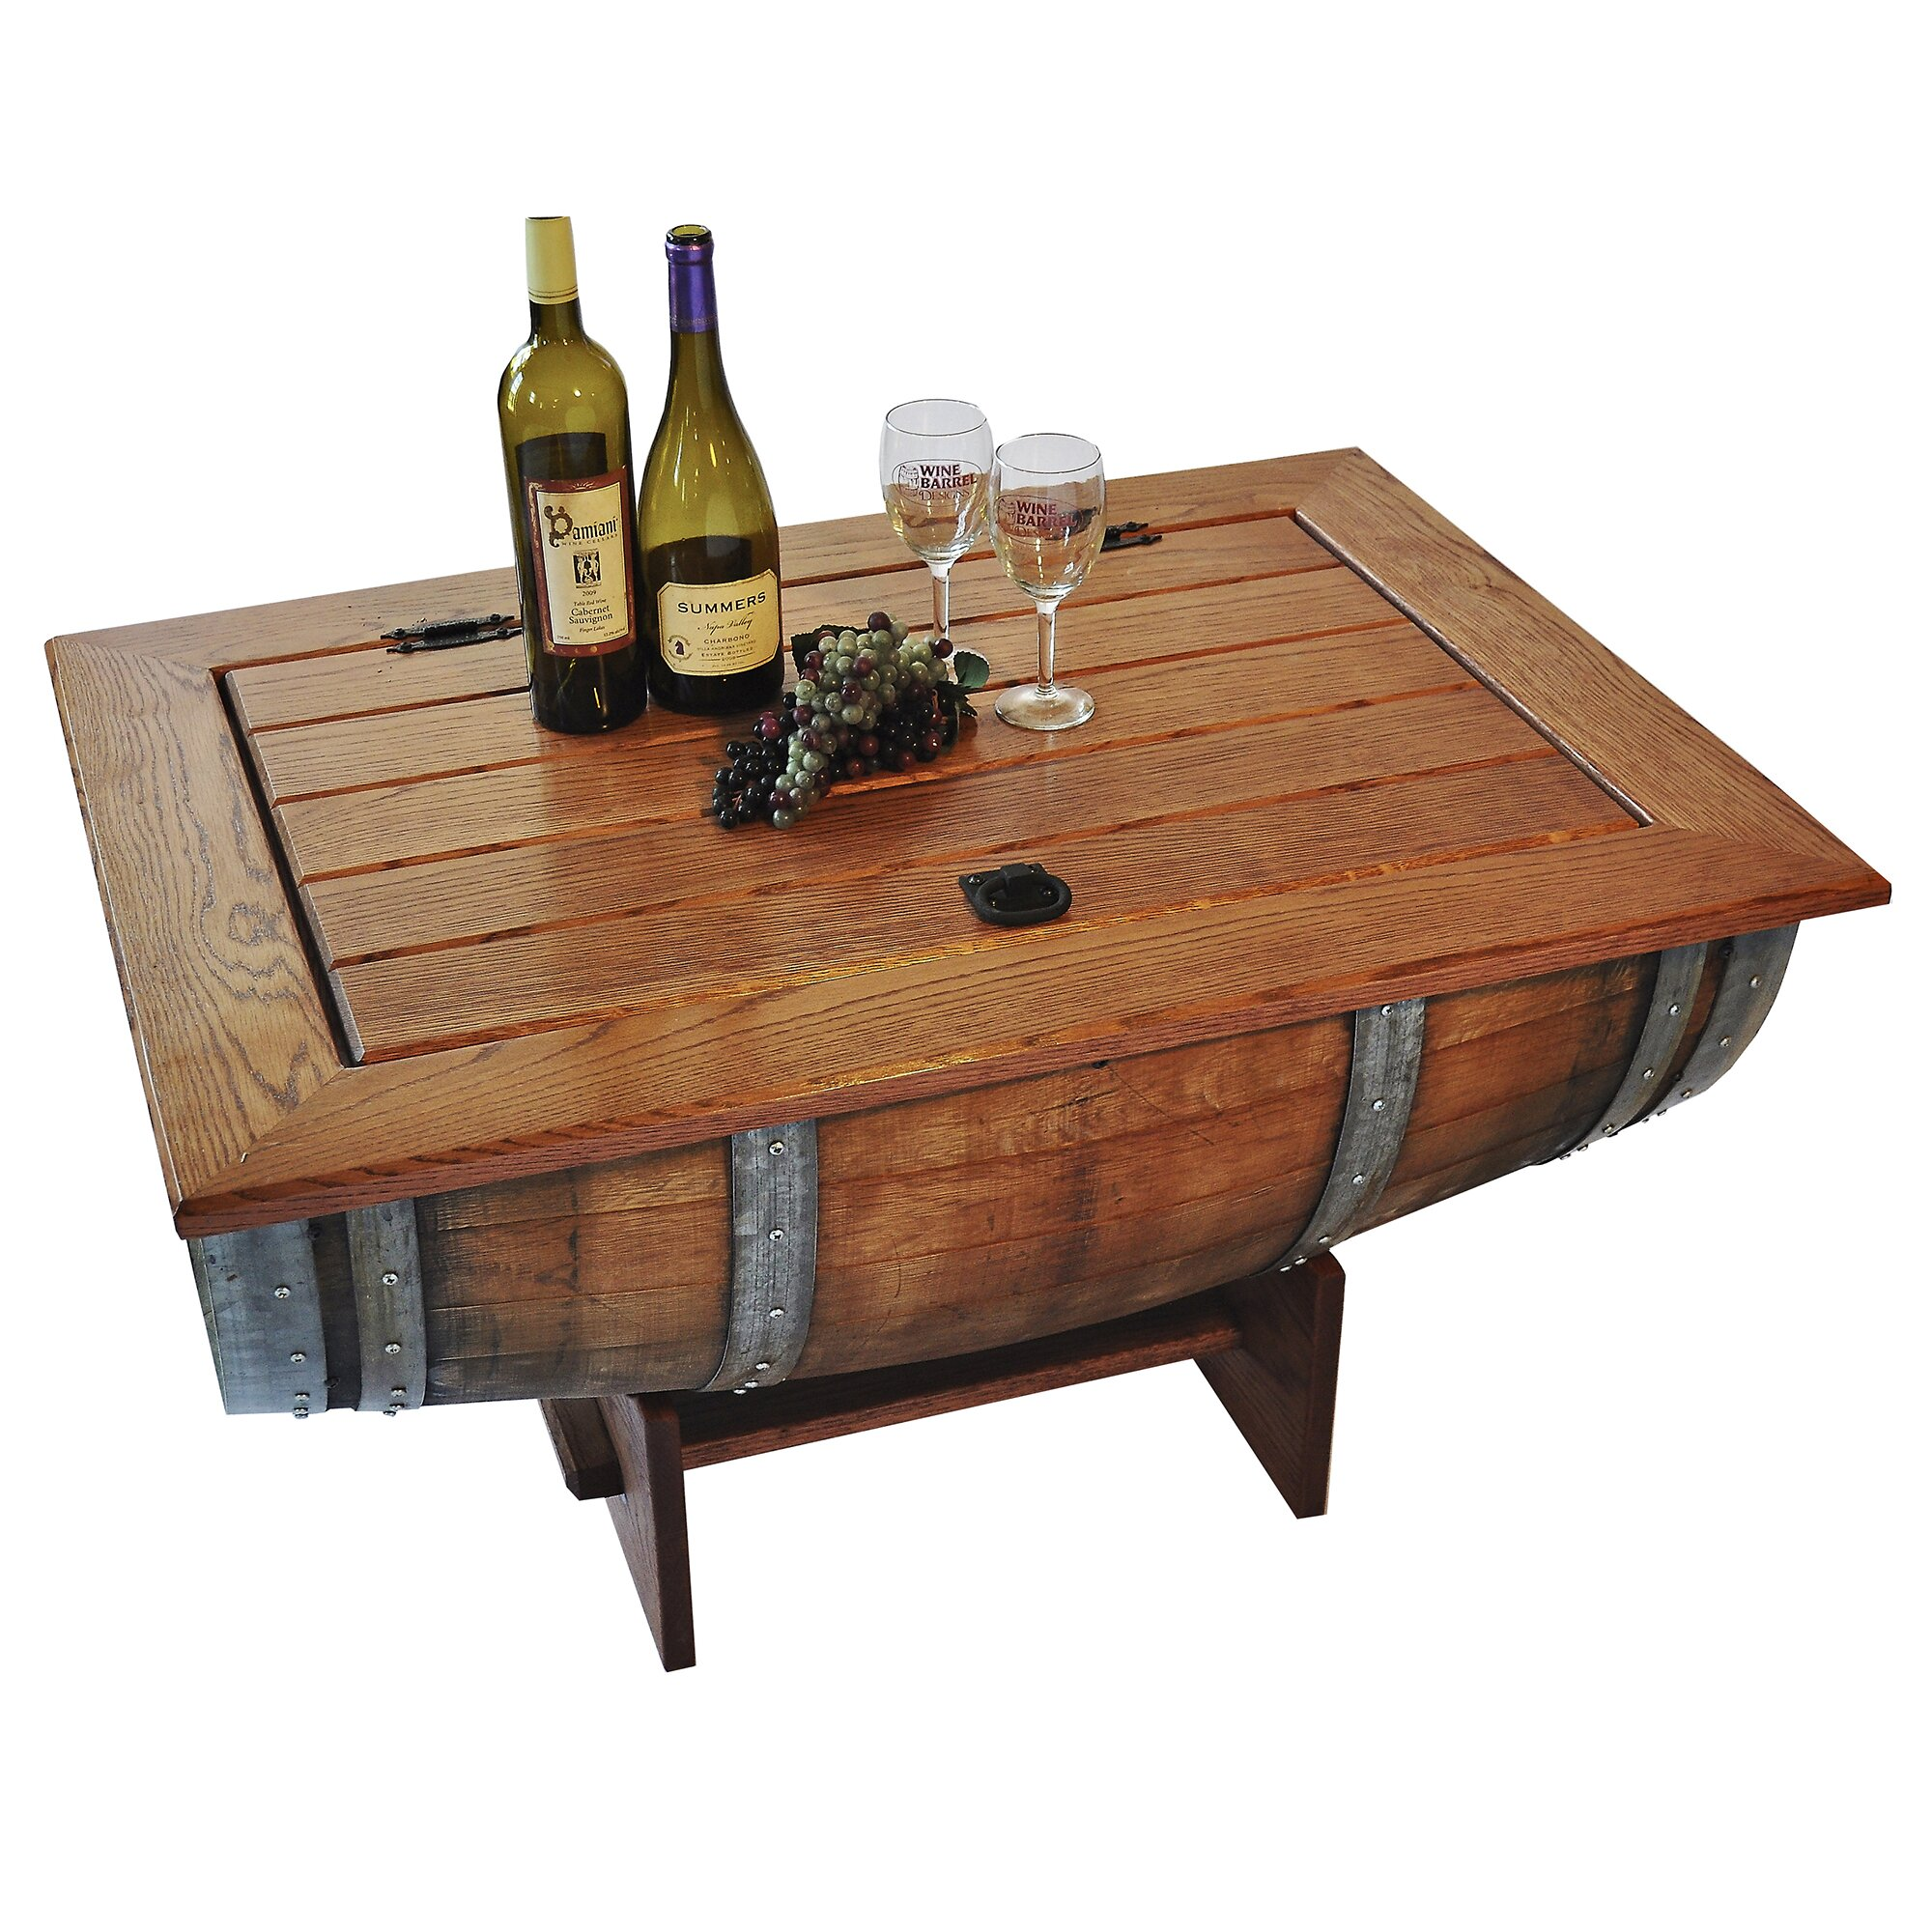 Wine barrel coffee table wayfair Collectors coffee table